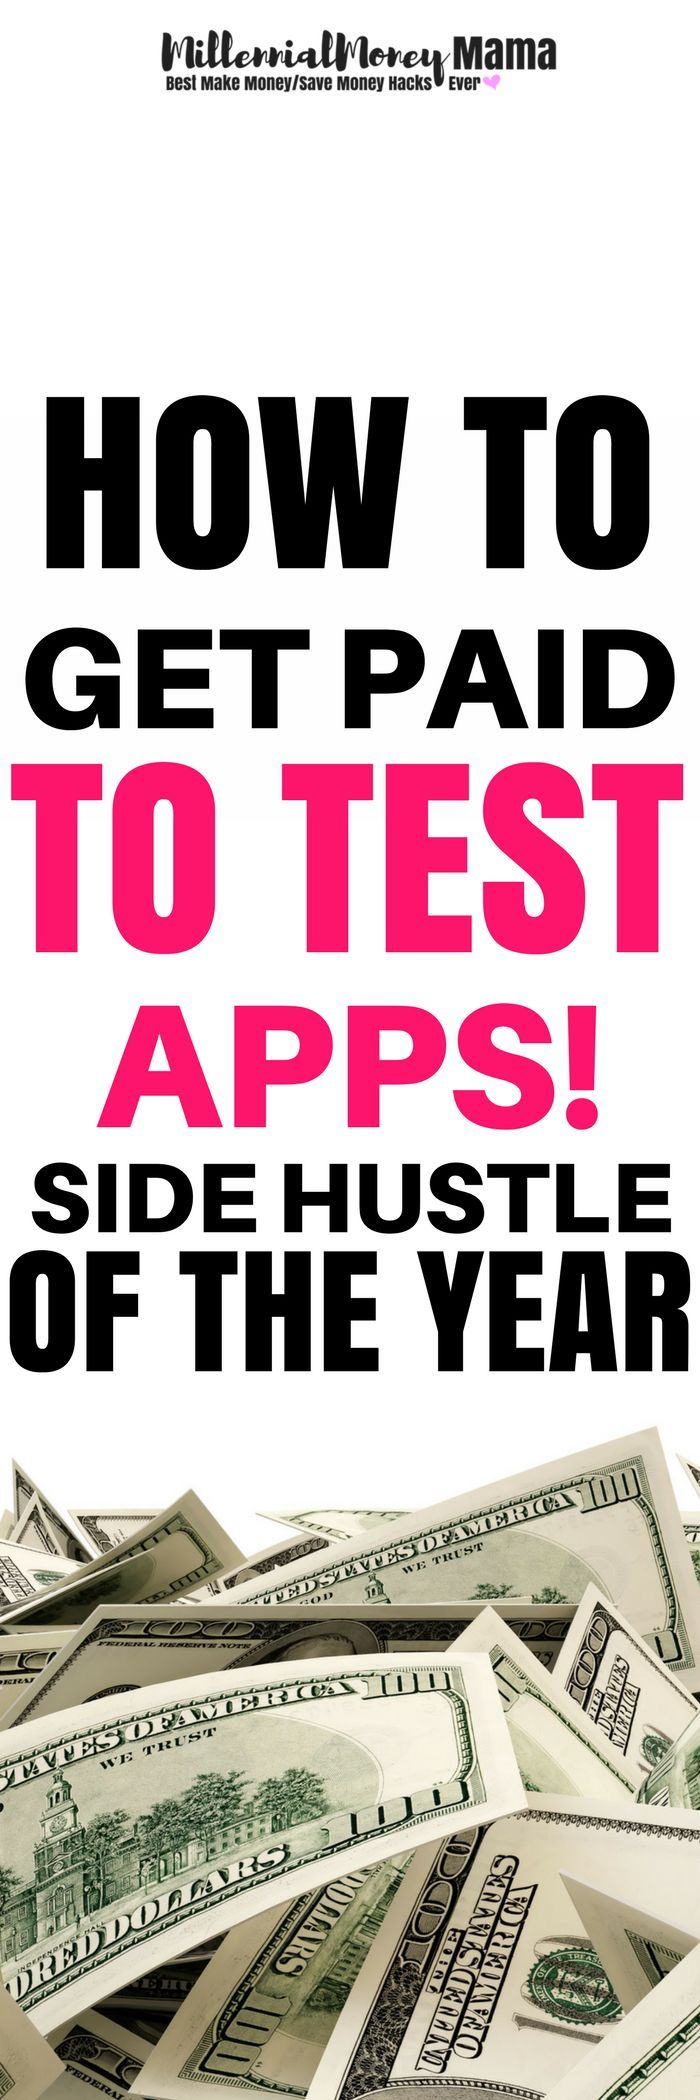 Looking for a side hustle to earn extra  income? You can get paid with apps! Yes, playing around on apps. Check out the full scoop (affiliate) #makemoneyfromhome #makemoneyonline #workfromhome #makemoneyfromhomemom #makemoneyfromhomelegit #extraincome #extraincomeideas #sidehustle #sidehustleideas